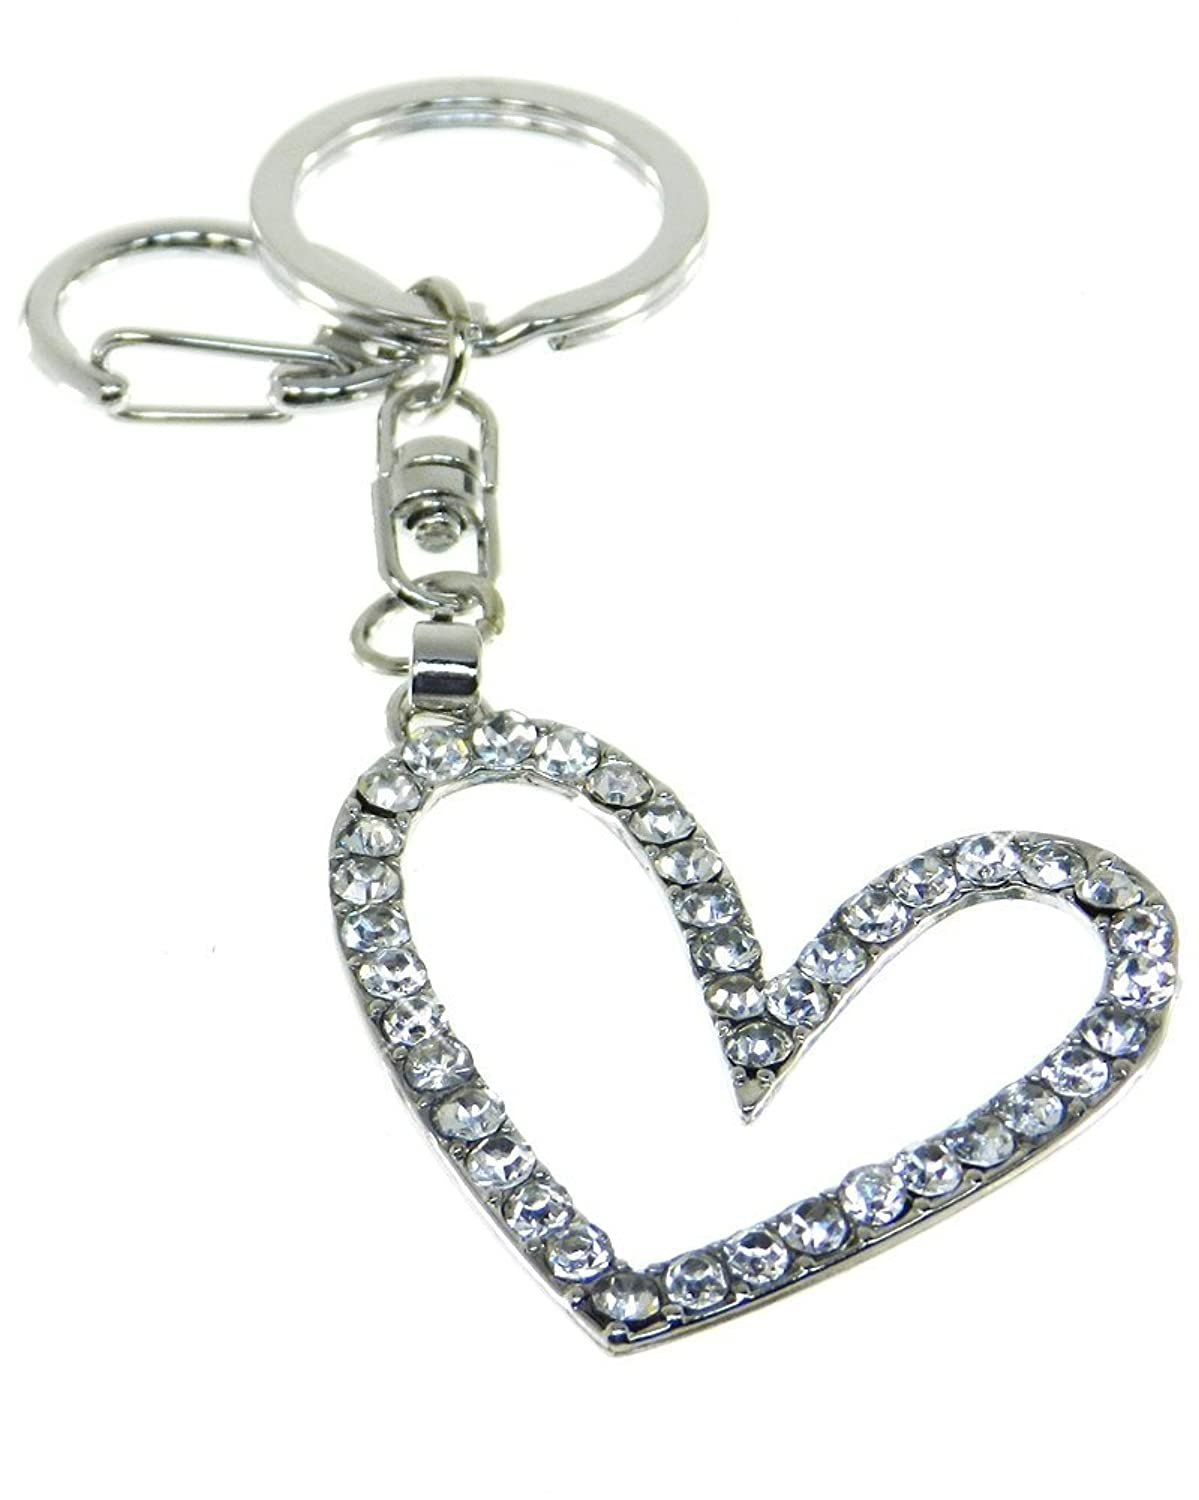 Purse Charm/Key Chain - Rhinestone Open Heart - Clear Crystals